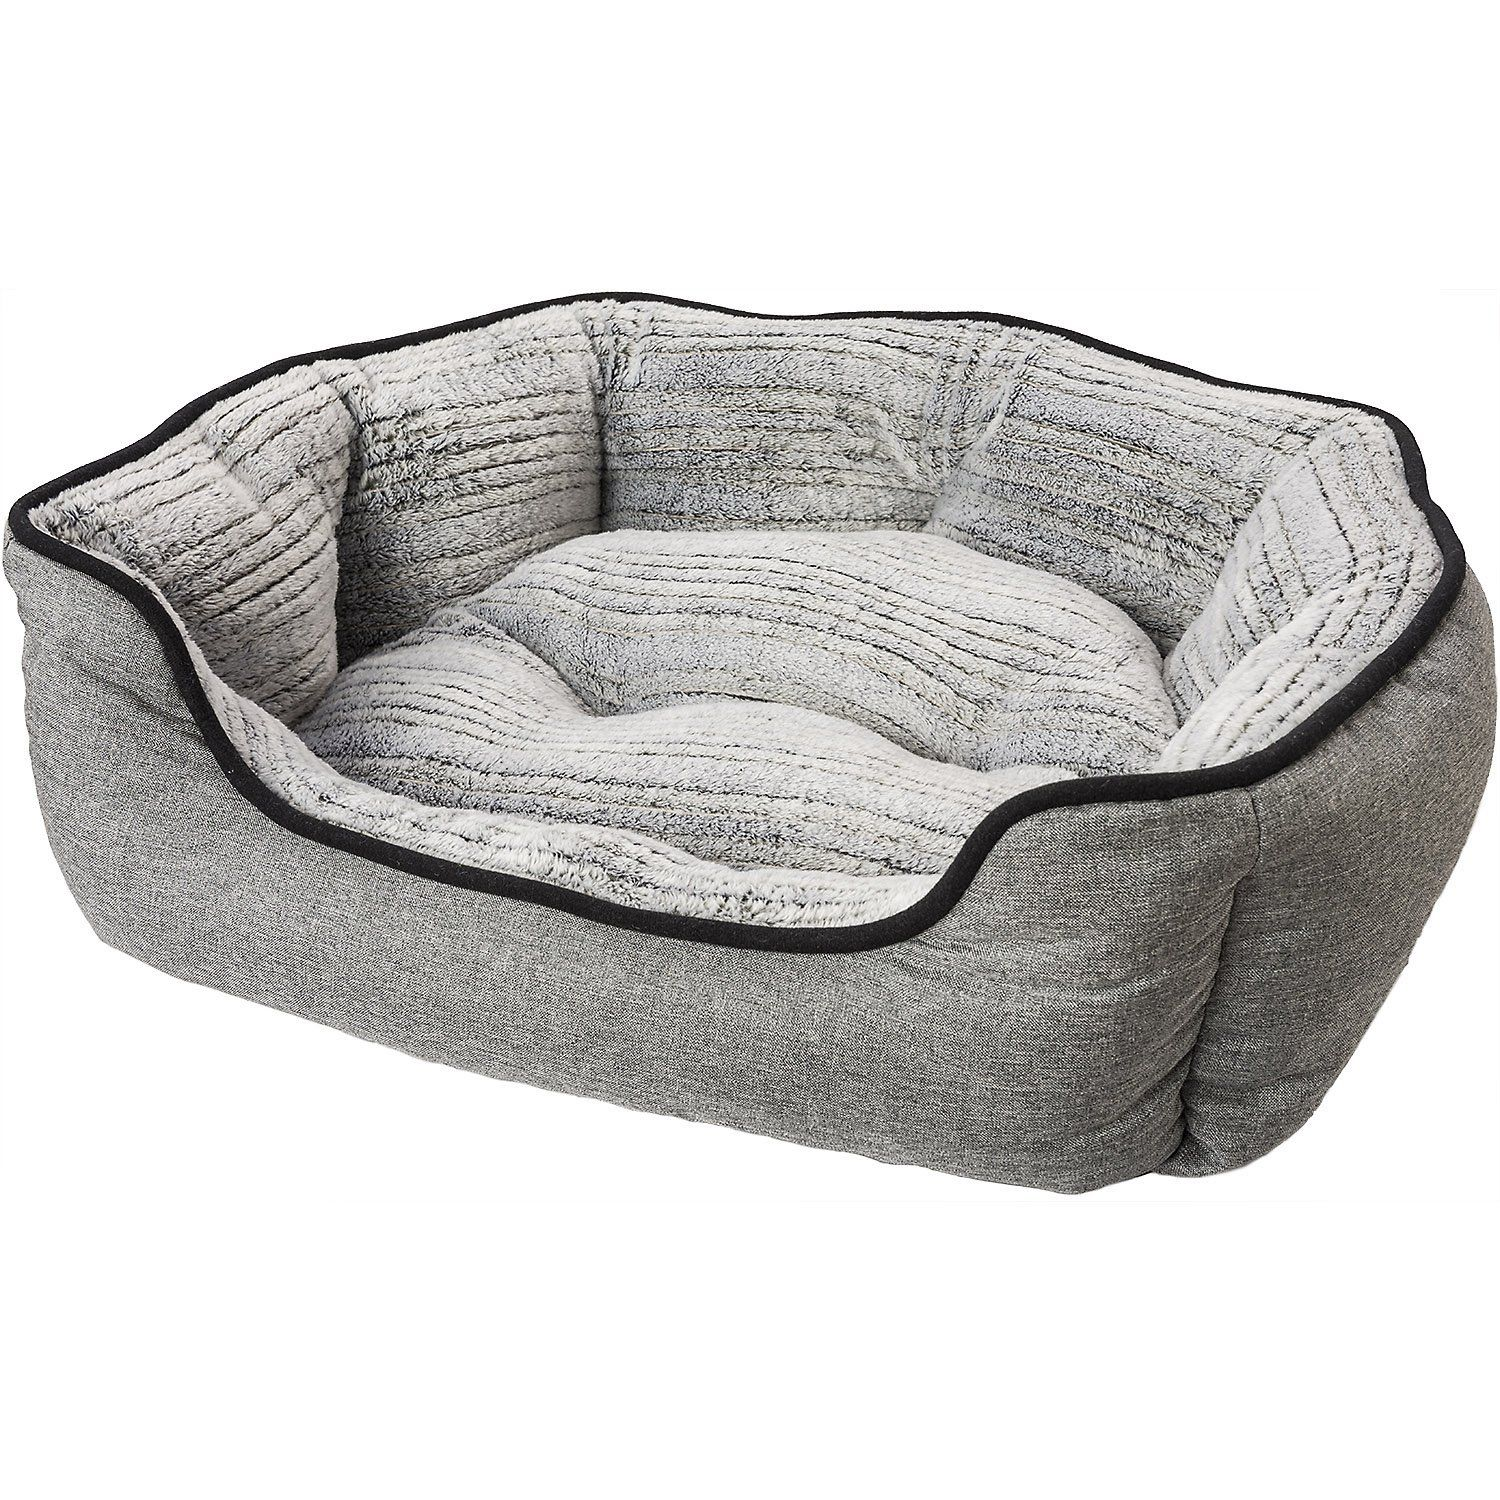 Spot Clam Shell Pet Bed Pet Bed for Cats and Small Dogs